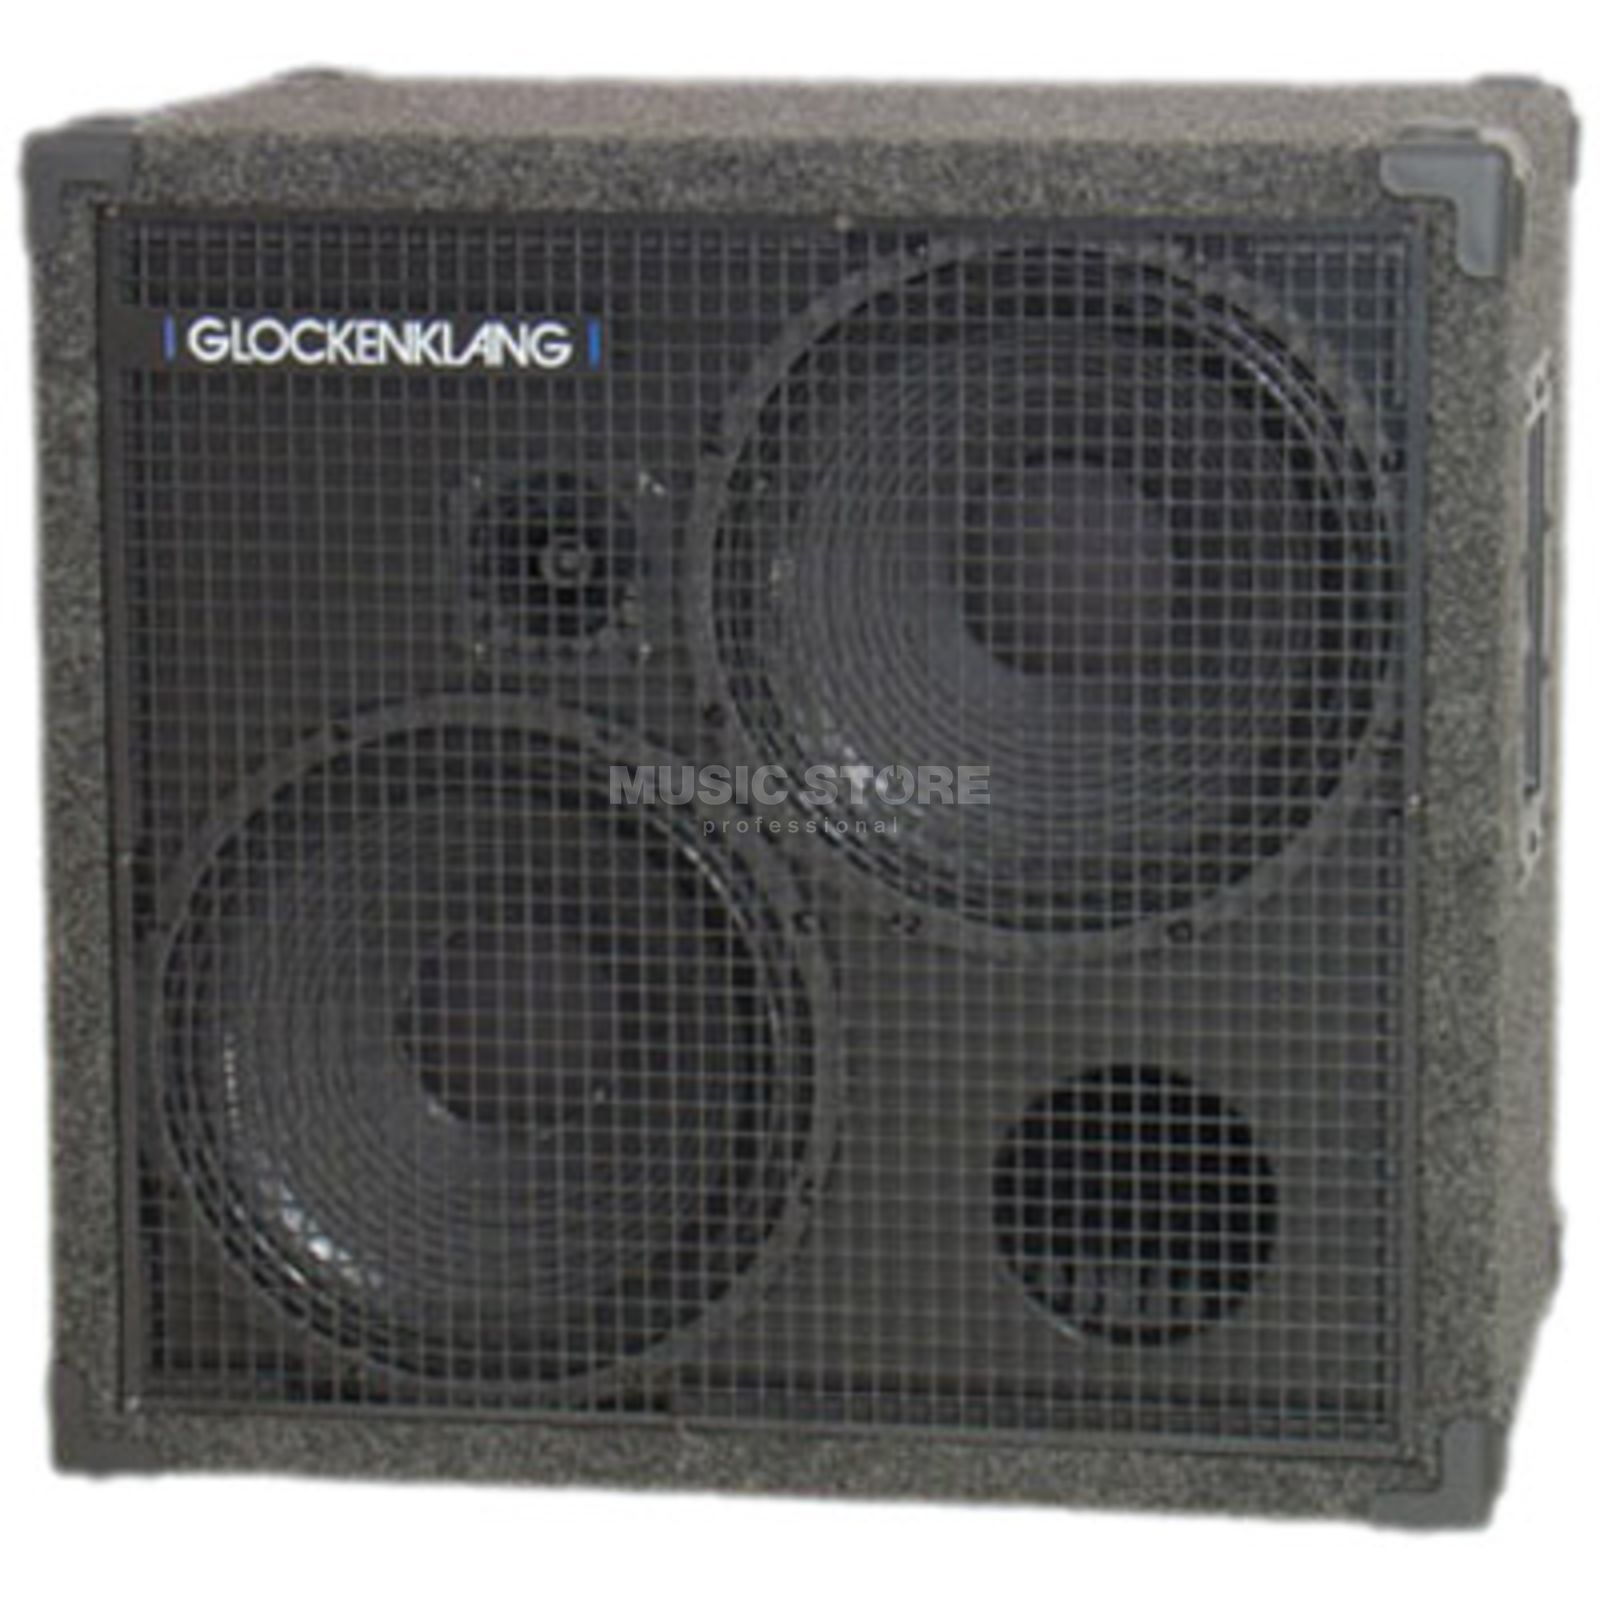 "Glockenklang Double Light Box 4 Ohm 500 Watt, 2x12"" Speaker + Horn Изображение товара"